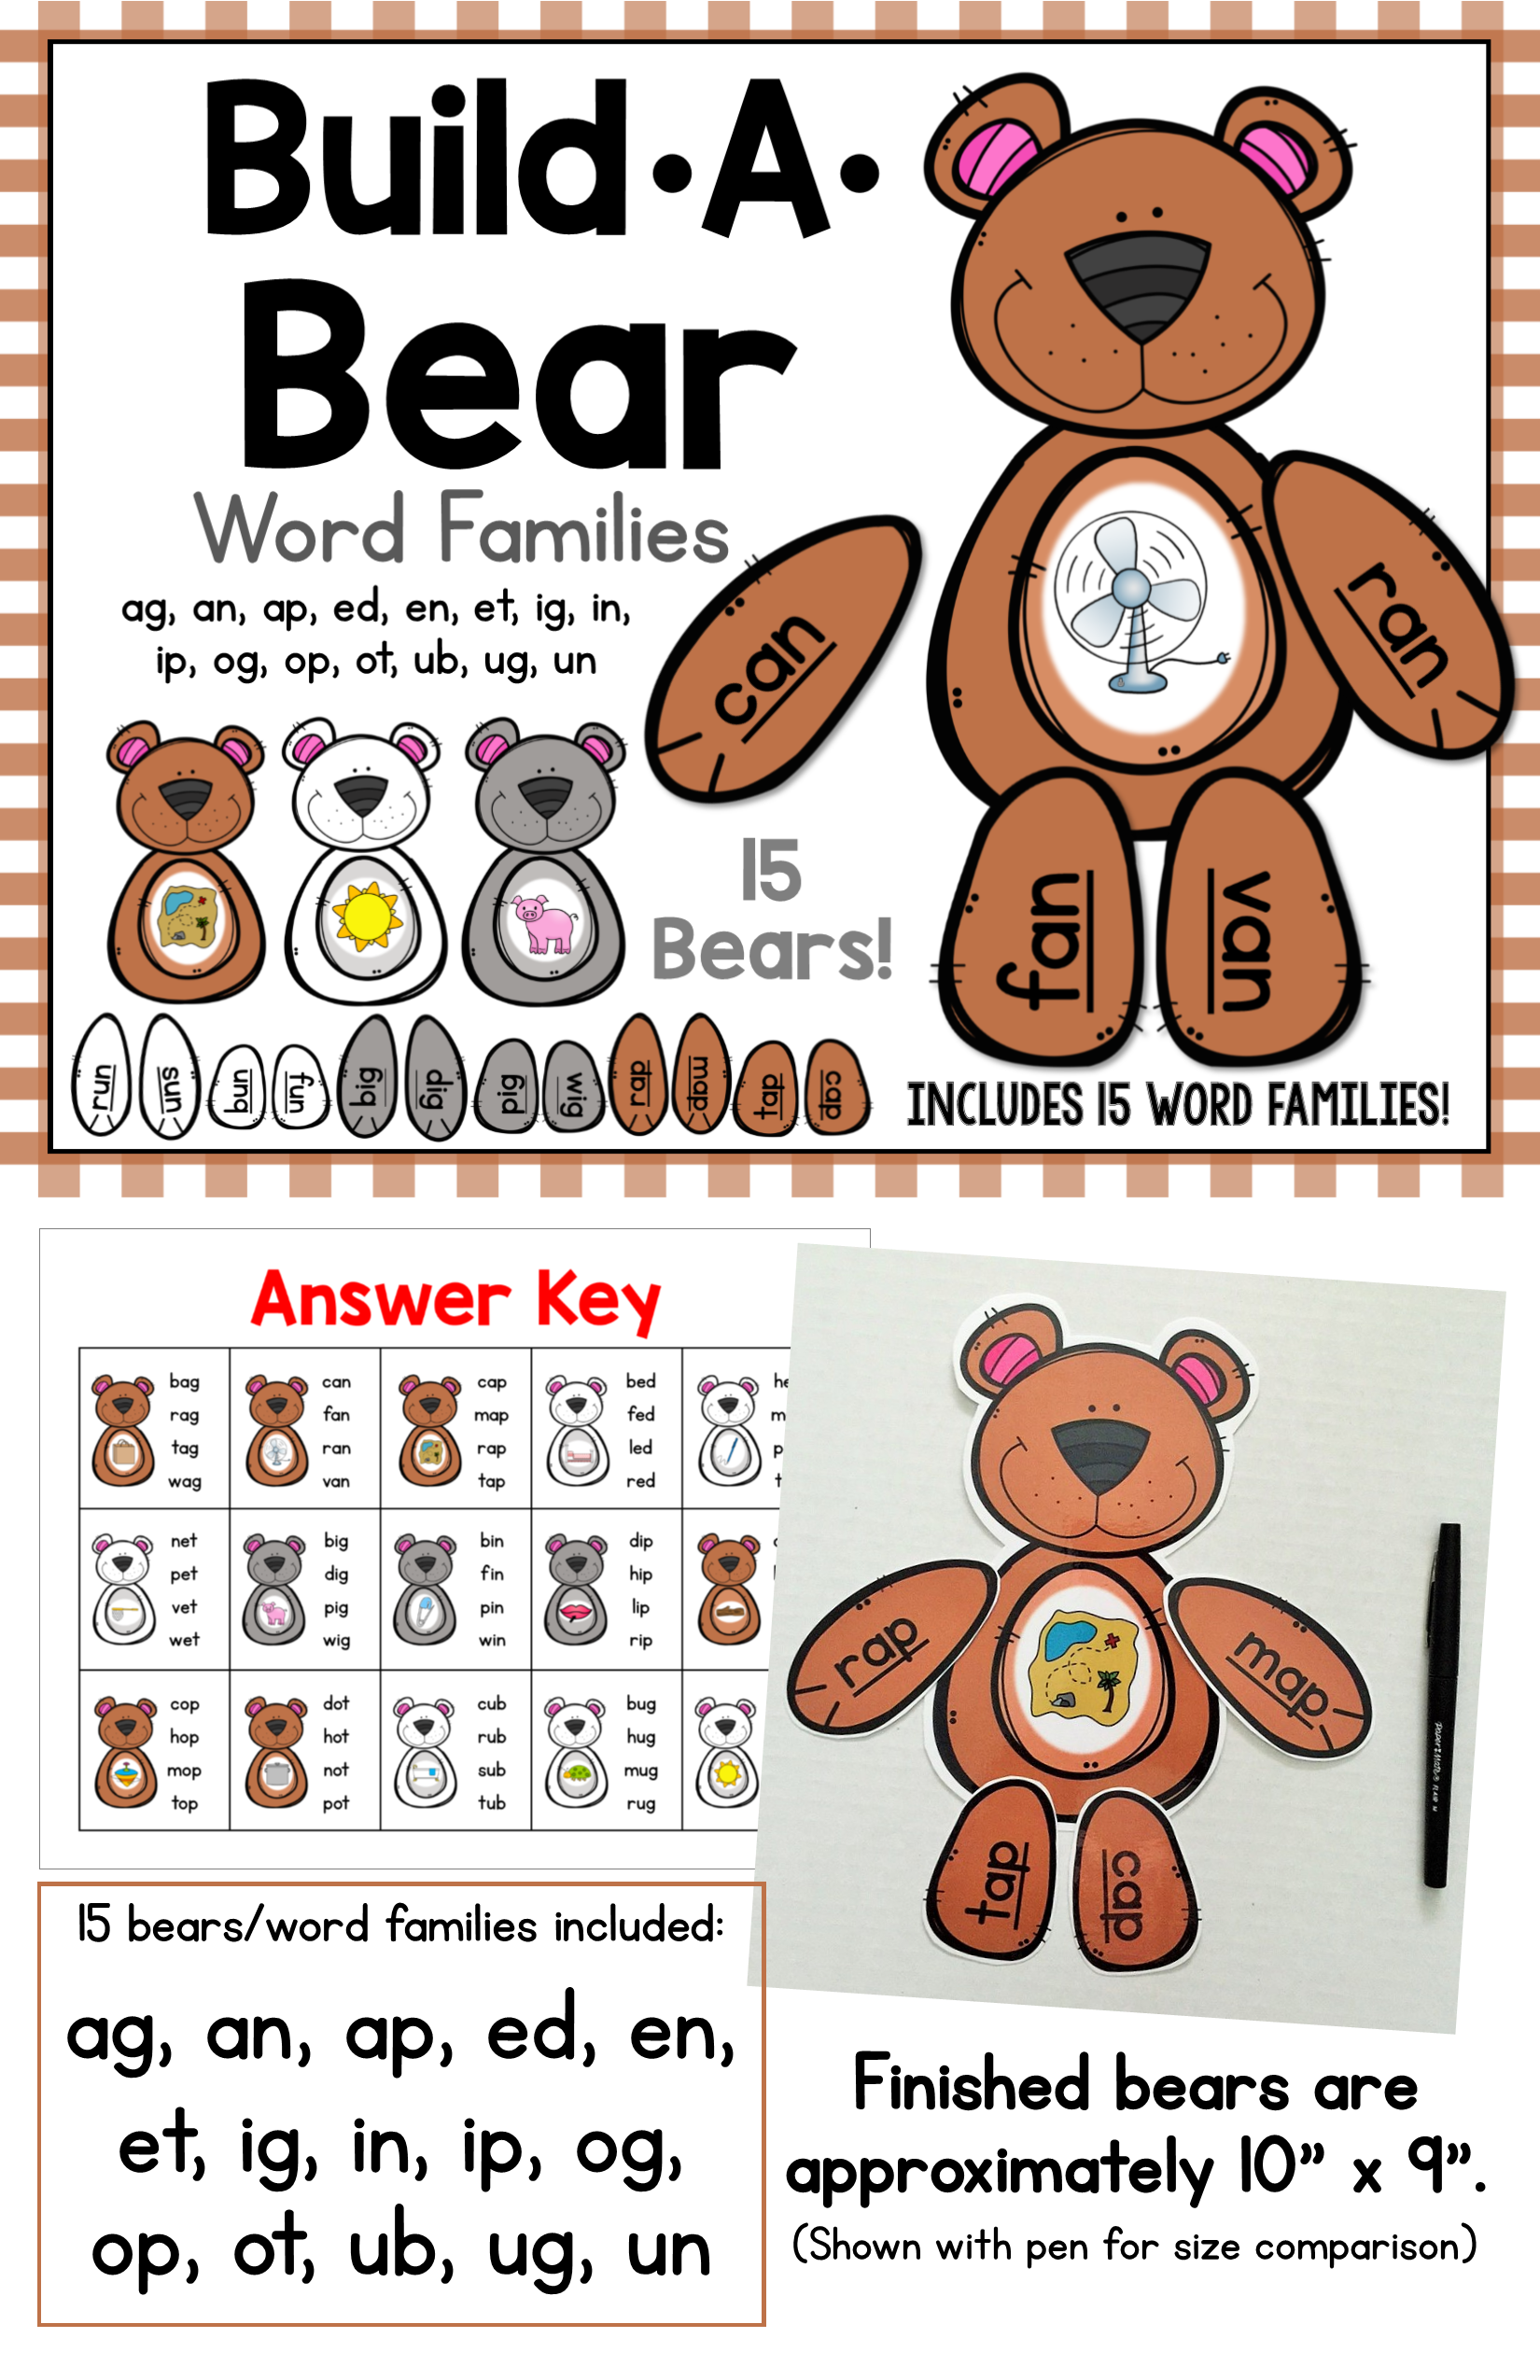 Build A Bear Word Families